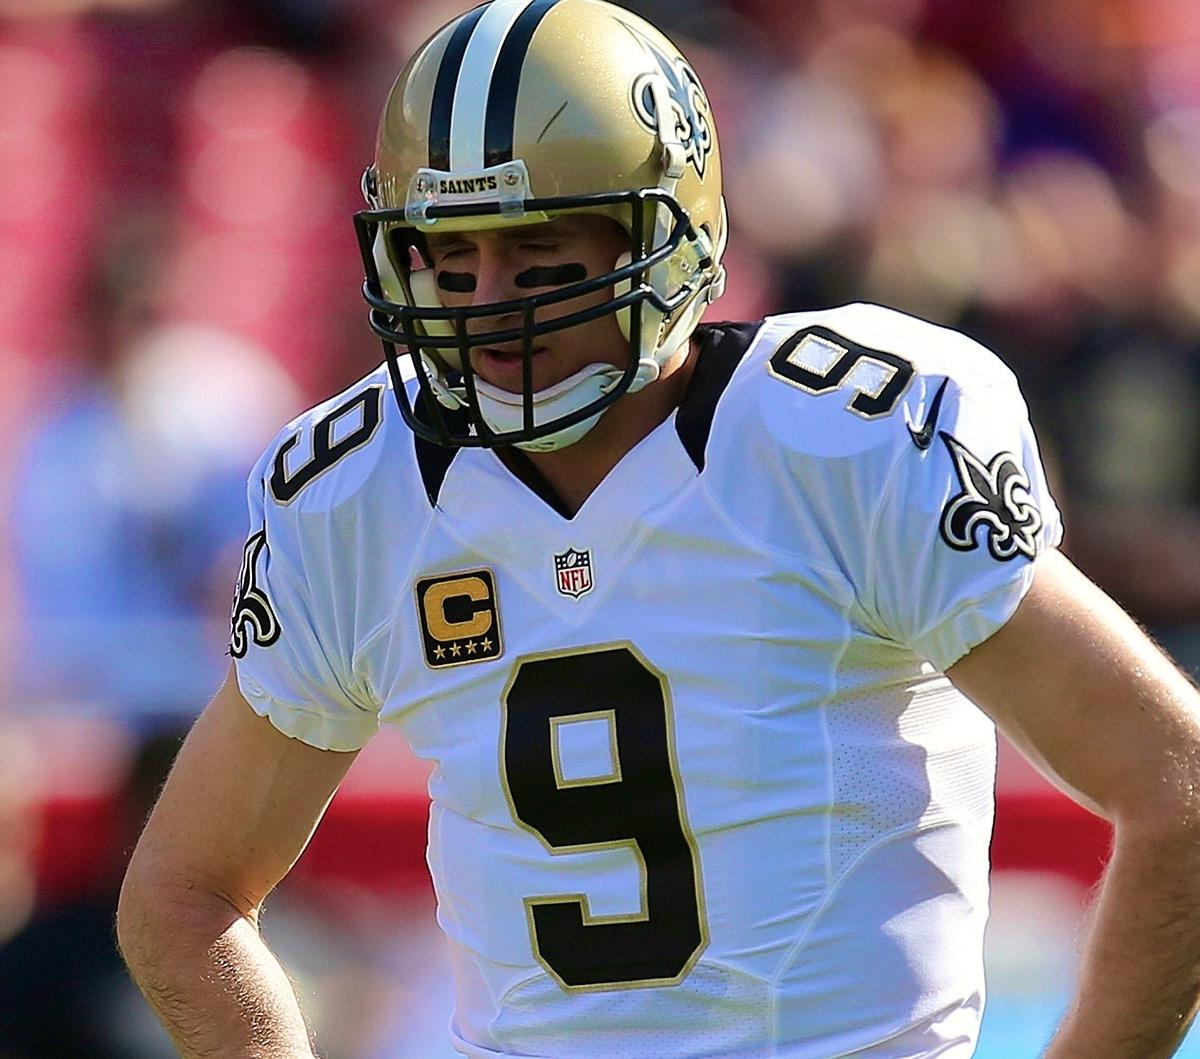 The Most Overrated Players in Fantasy Football This Year